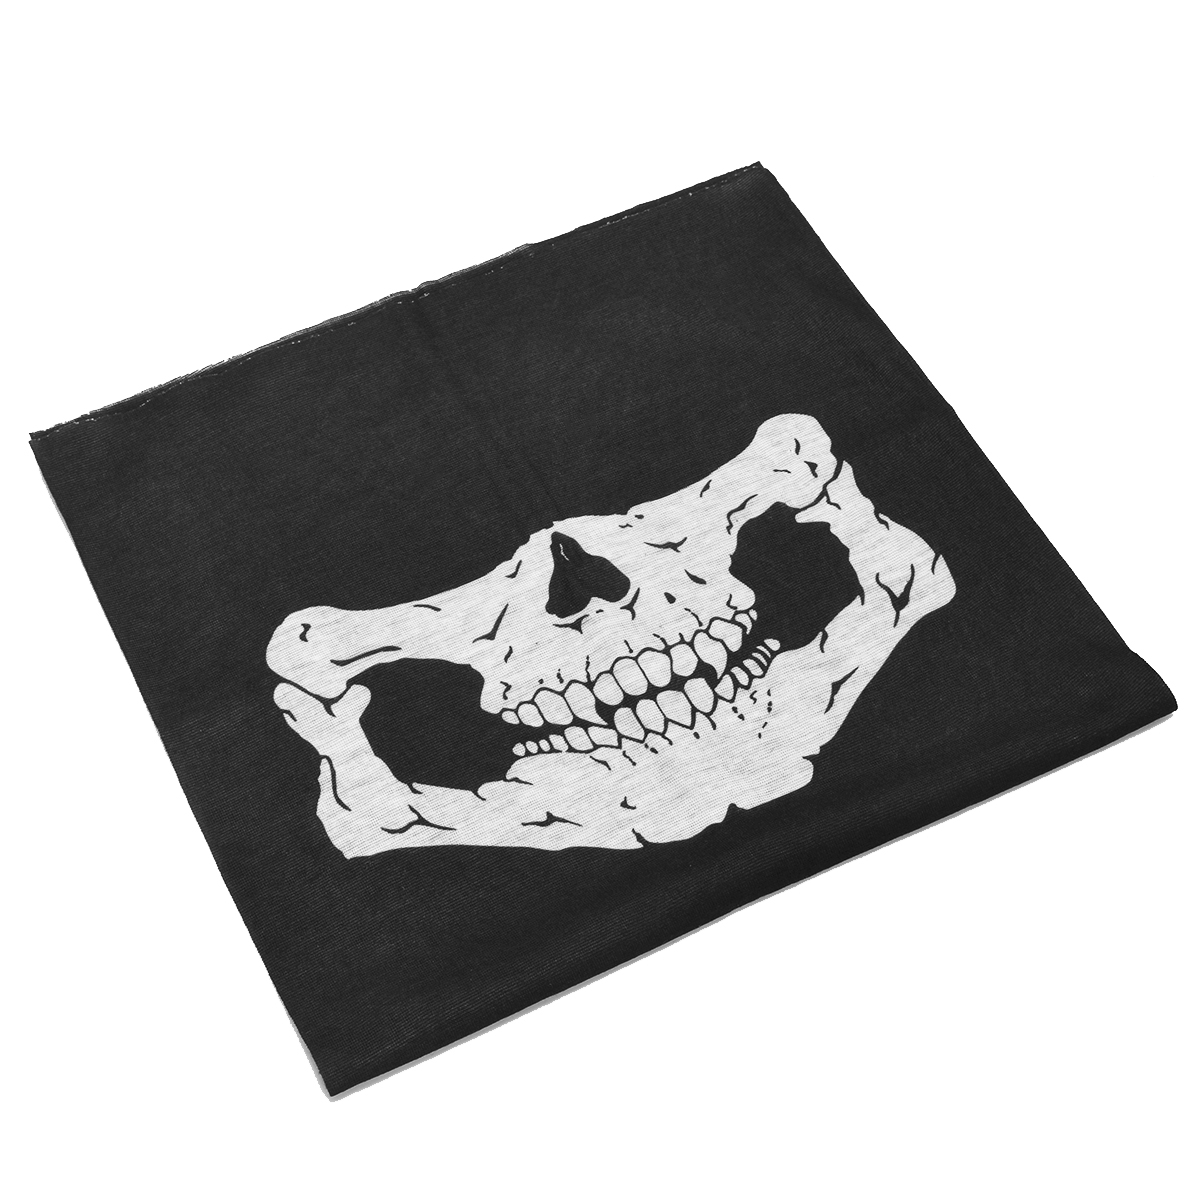 US $1 06 29% OFF|Cool Bandanas Skull Motorcycle Neck Half Face Ghost Mask  Paintball Game Headband Multi Masks Scarf Half Face Mask Cap Neck-in